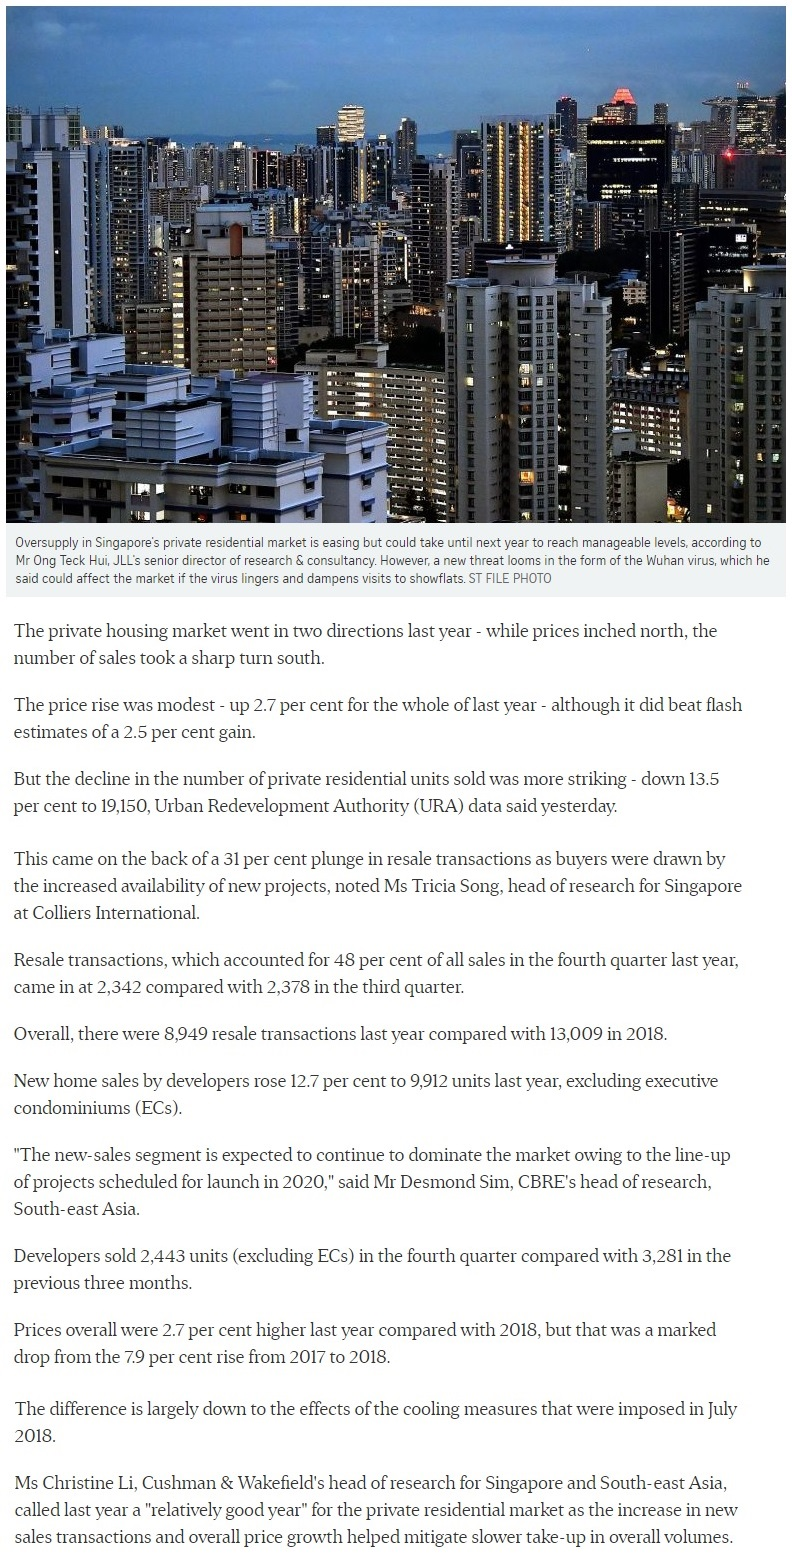 Park Nova - Singapore private home prices inch up 2.7% for 2019 Part 1